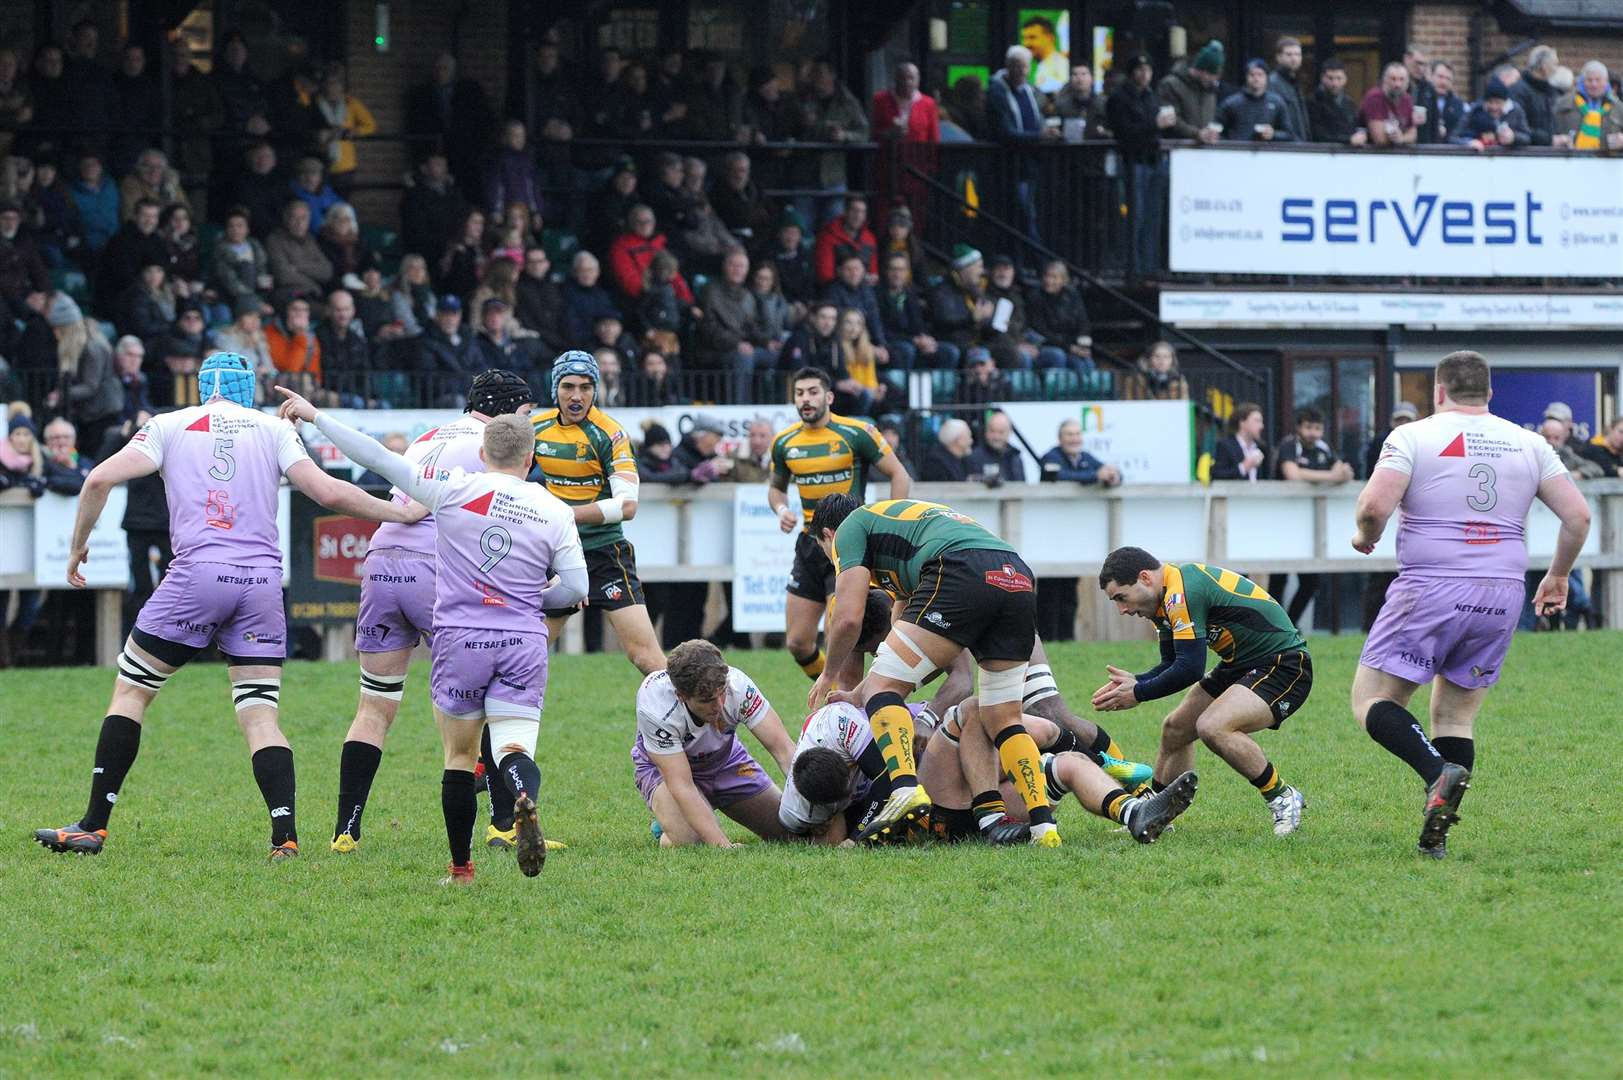 RUGBY - Bury St Edmunds v Clifton..Pictured: ...PICTURE: Mecha Morton. (5598342)